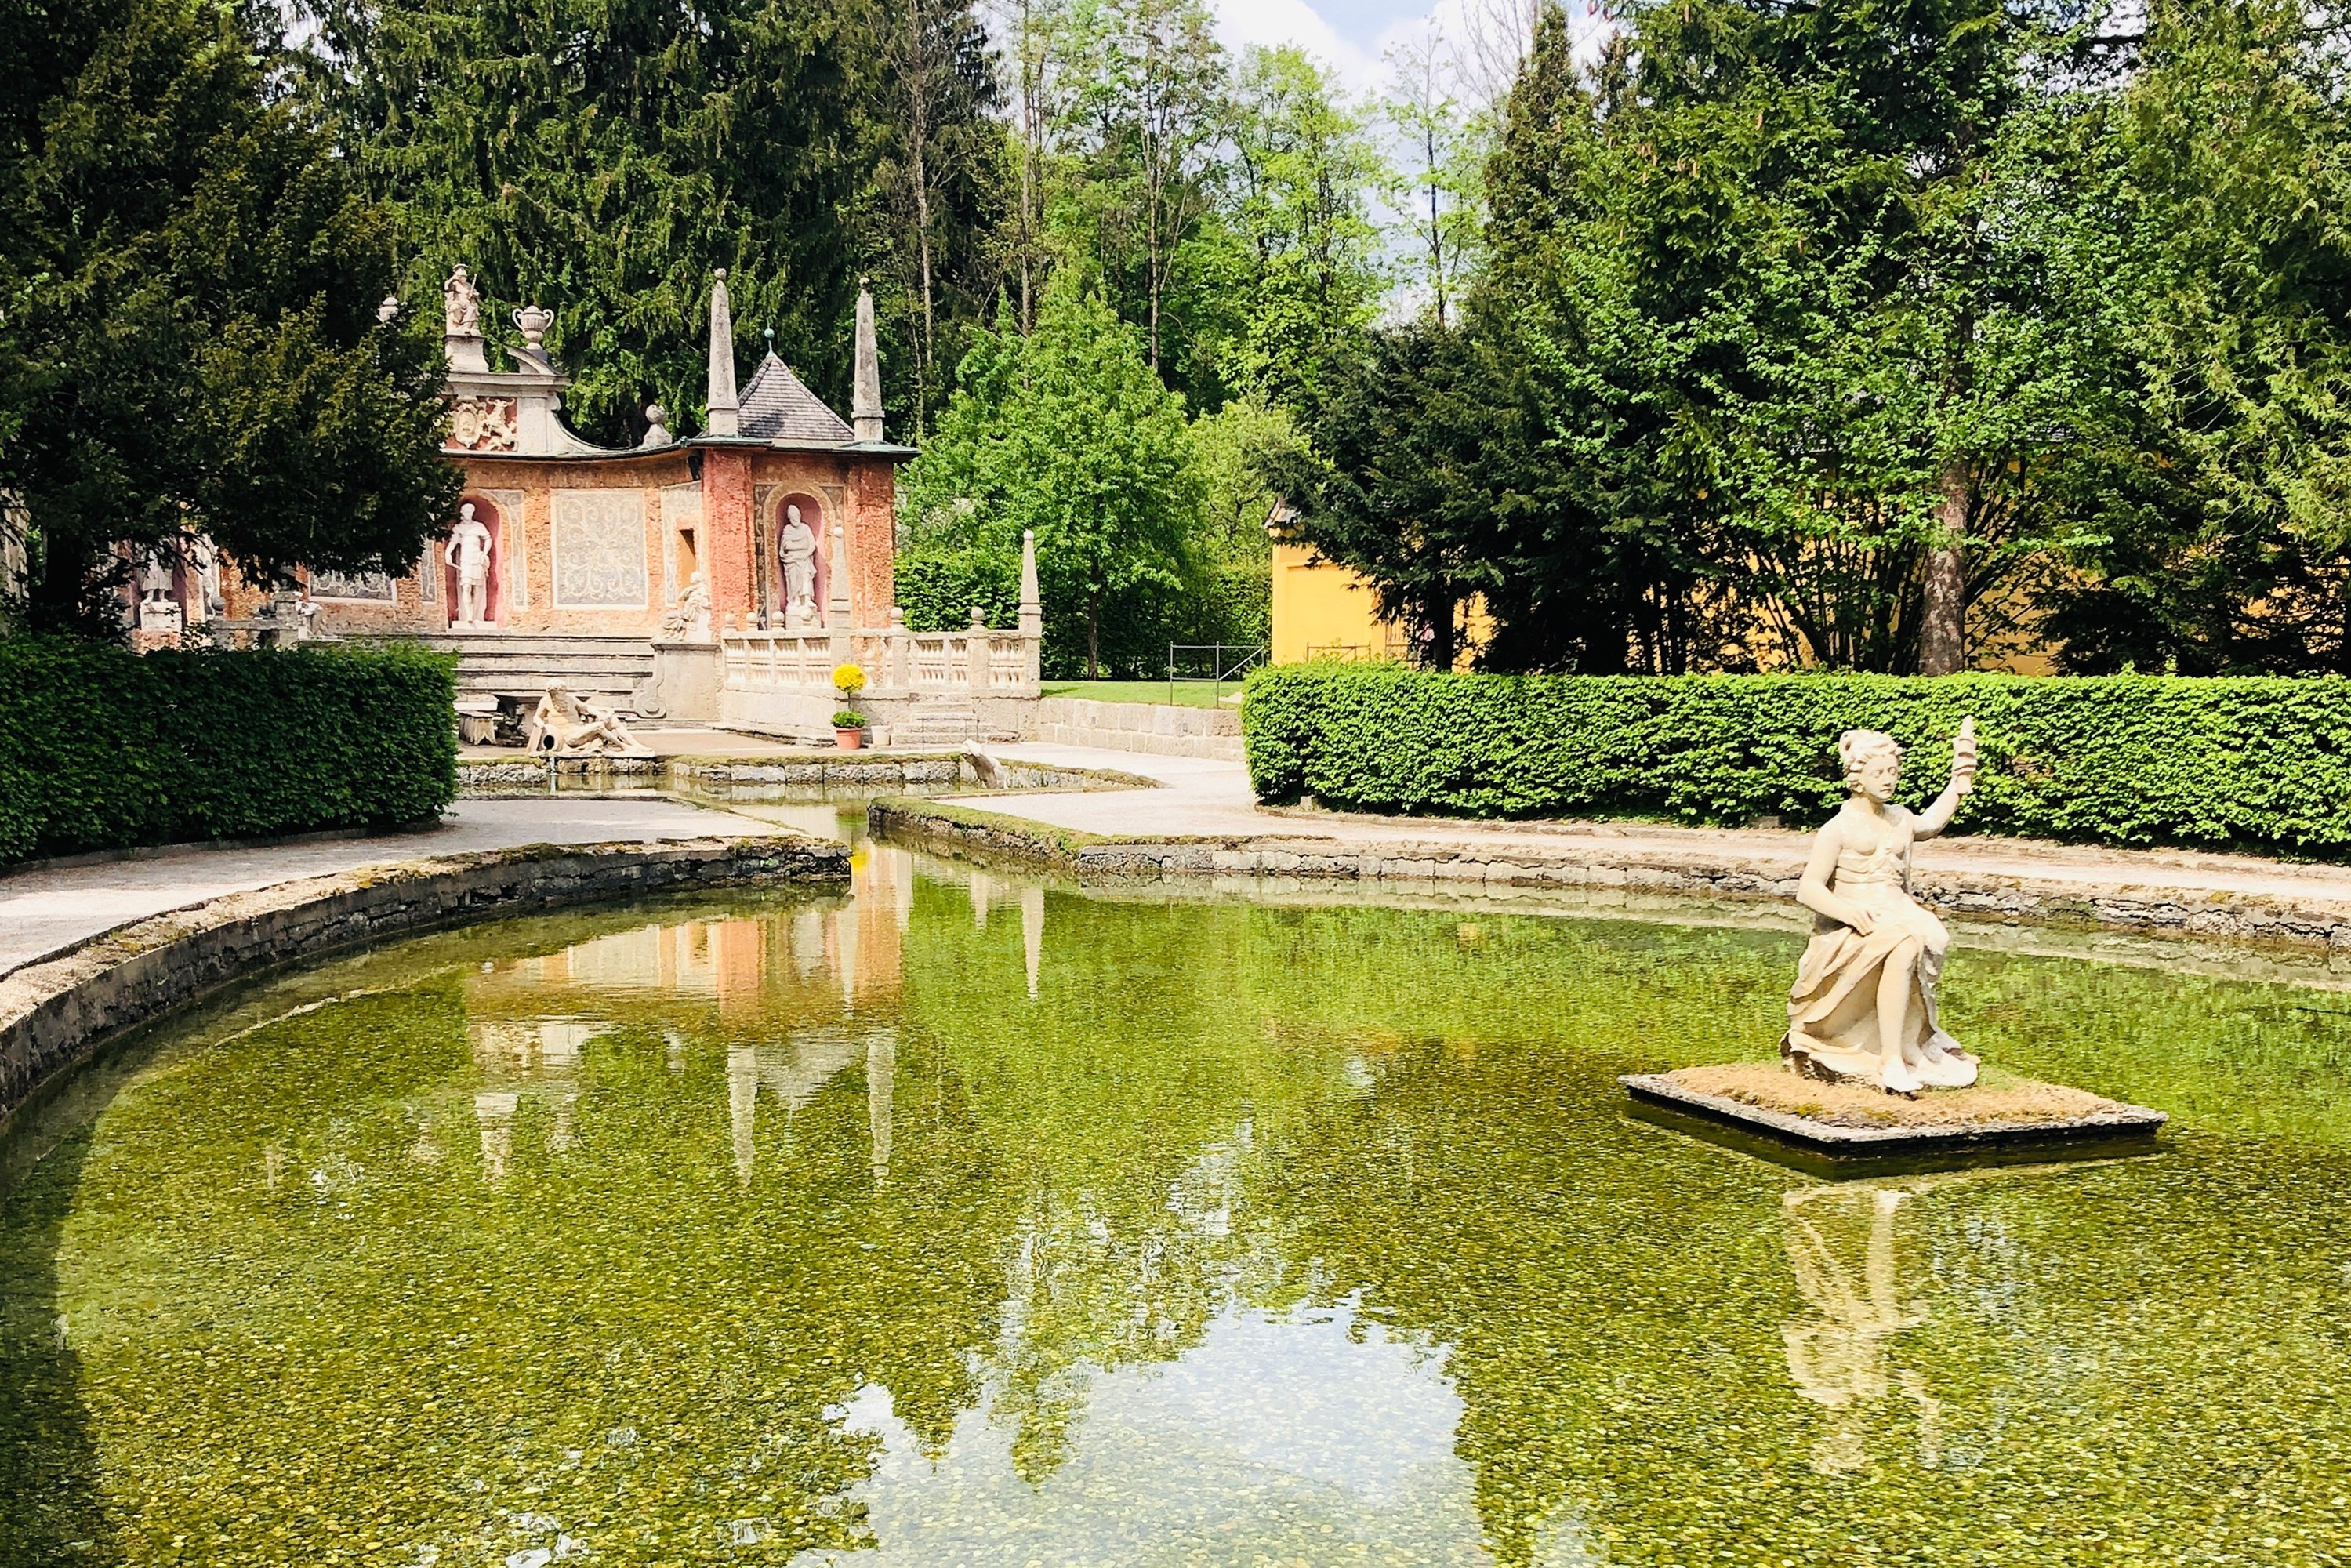 Hellbrunn Palace is home to several impressive Renaissance water features. (Photo by Catherine Waibel via dpa)